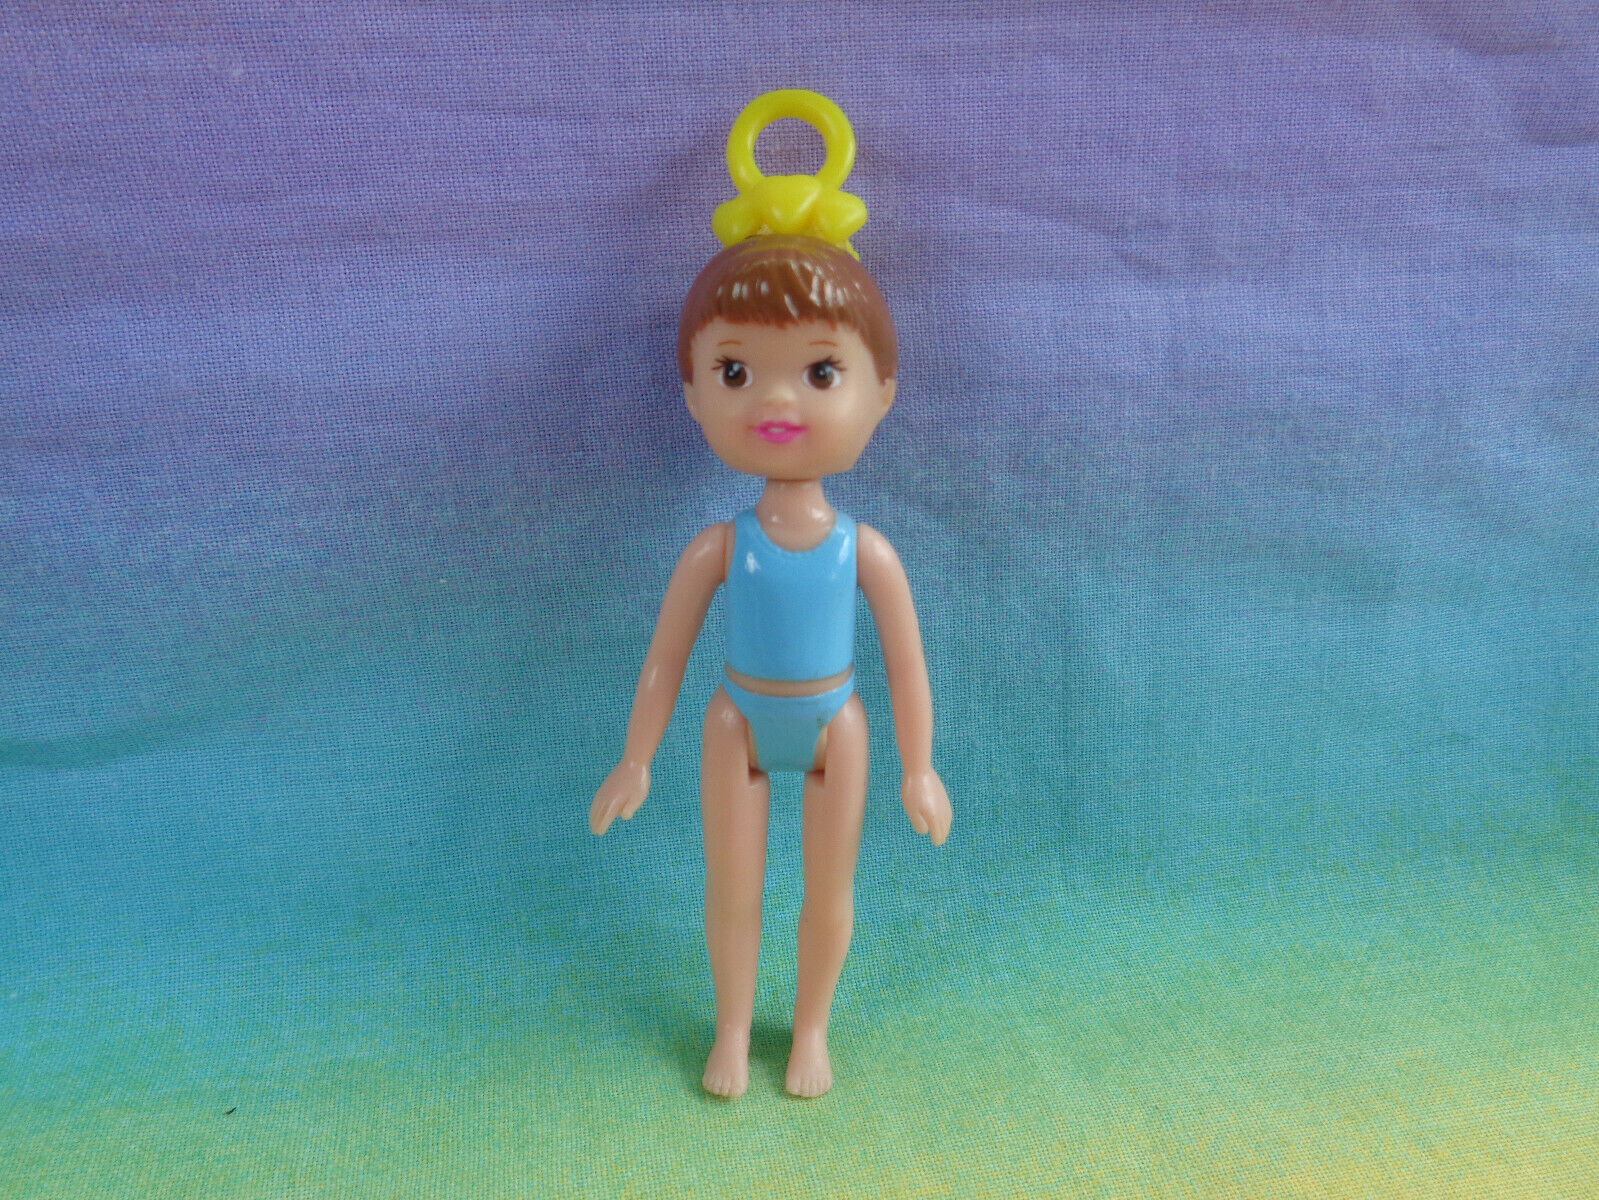 Primary image for 2000 Spin Master Key Charm Cutie Doll - as is - no hair